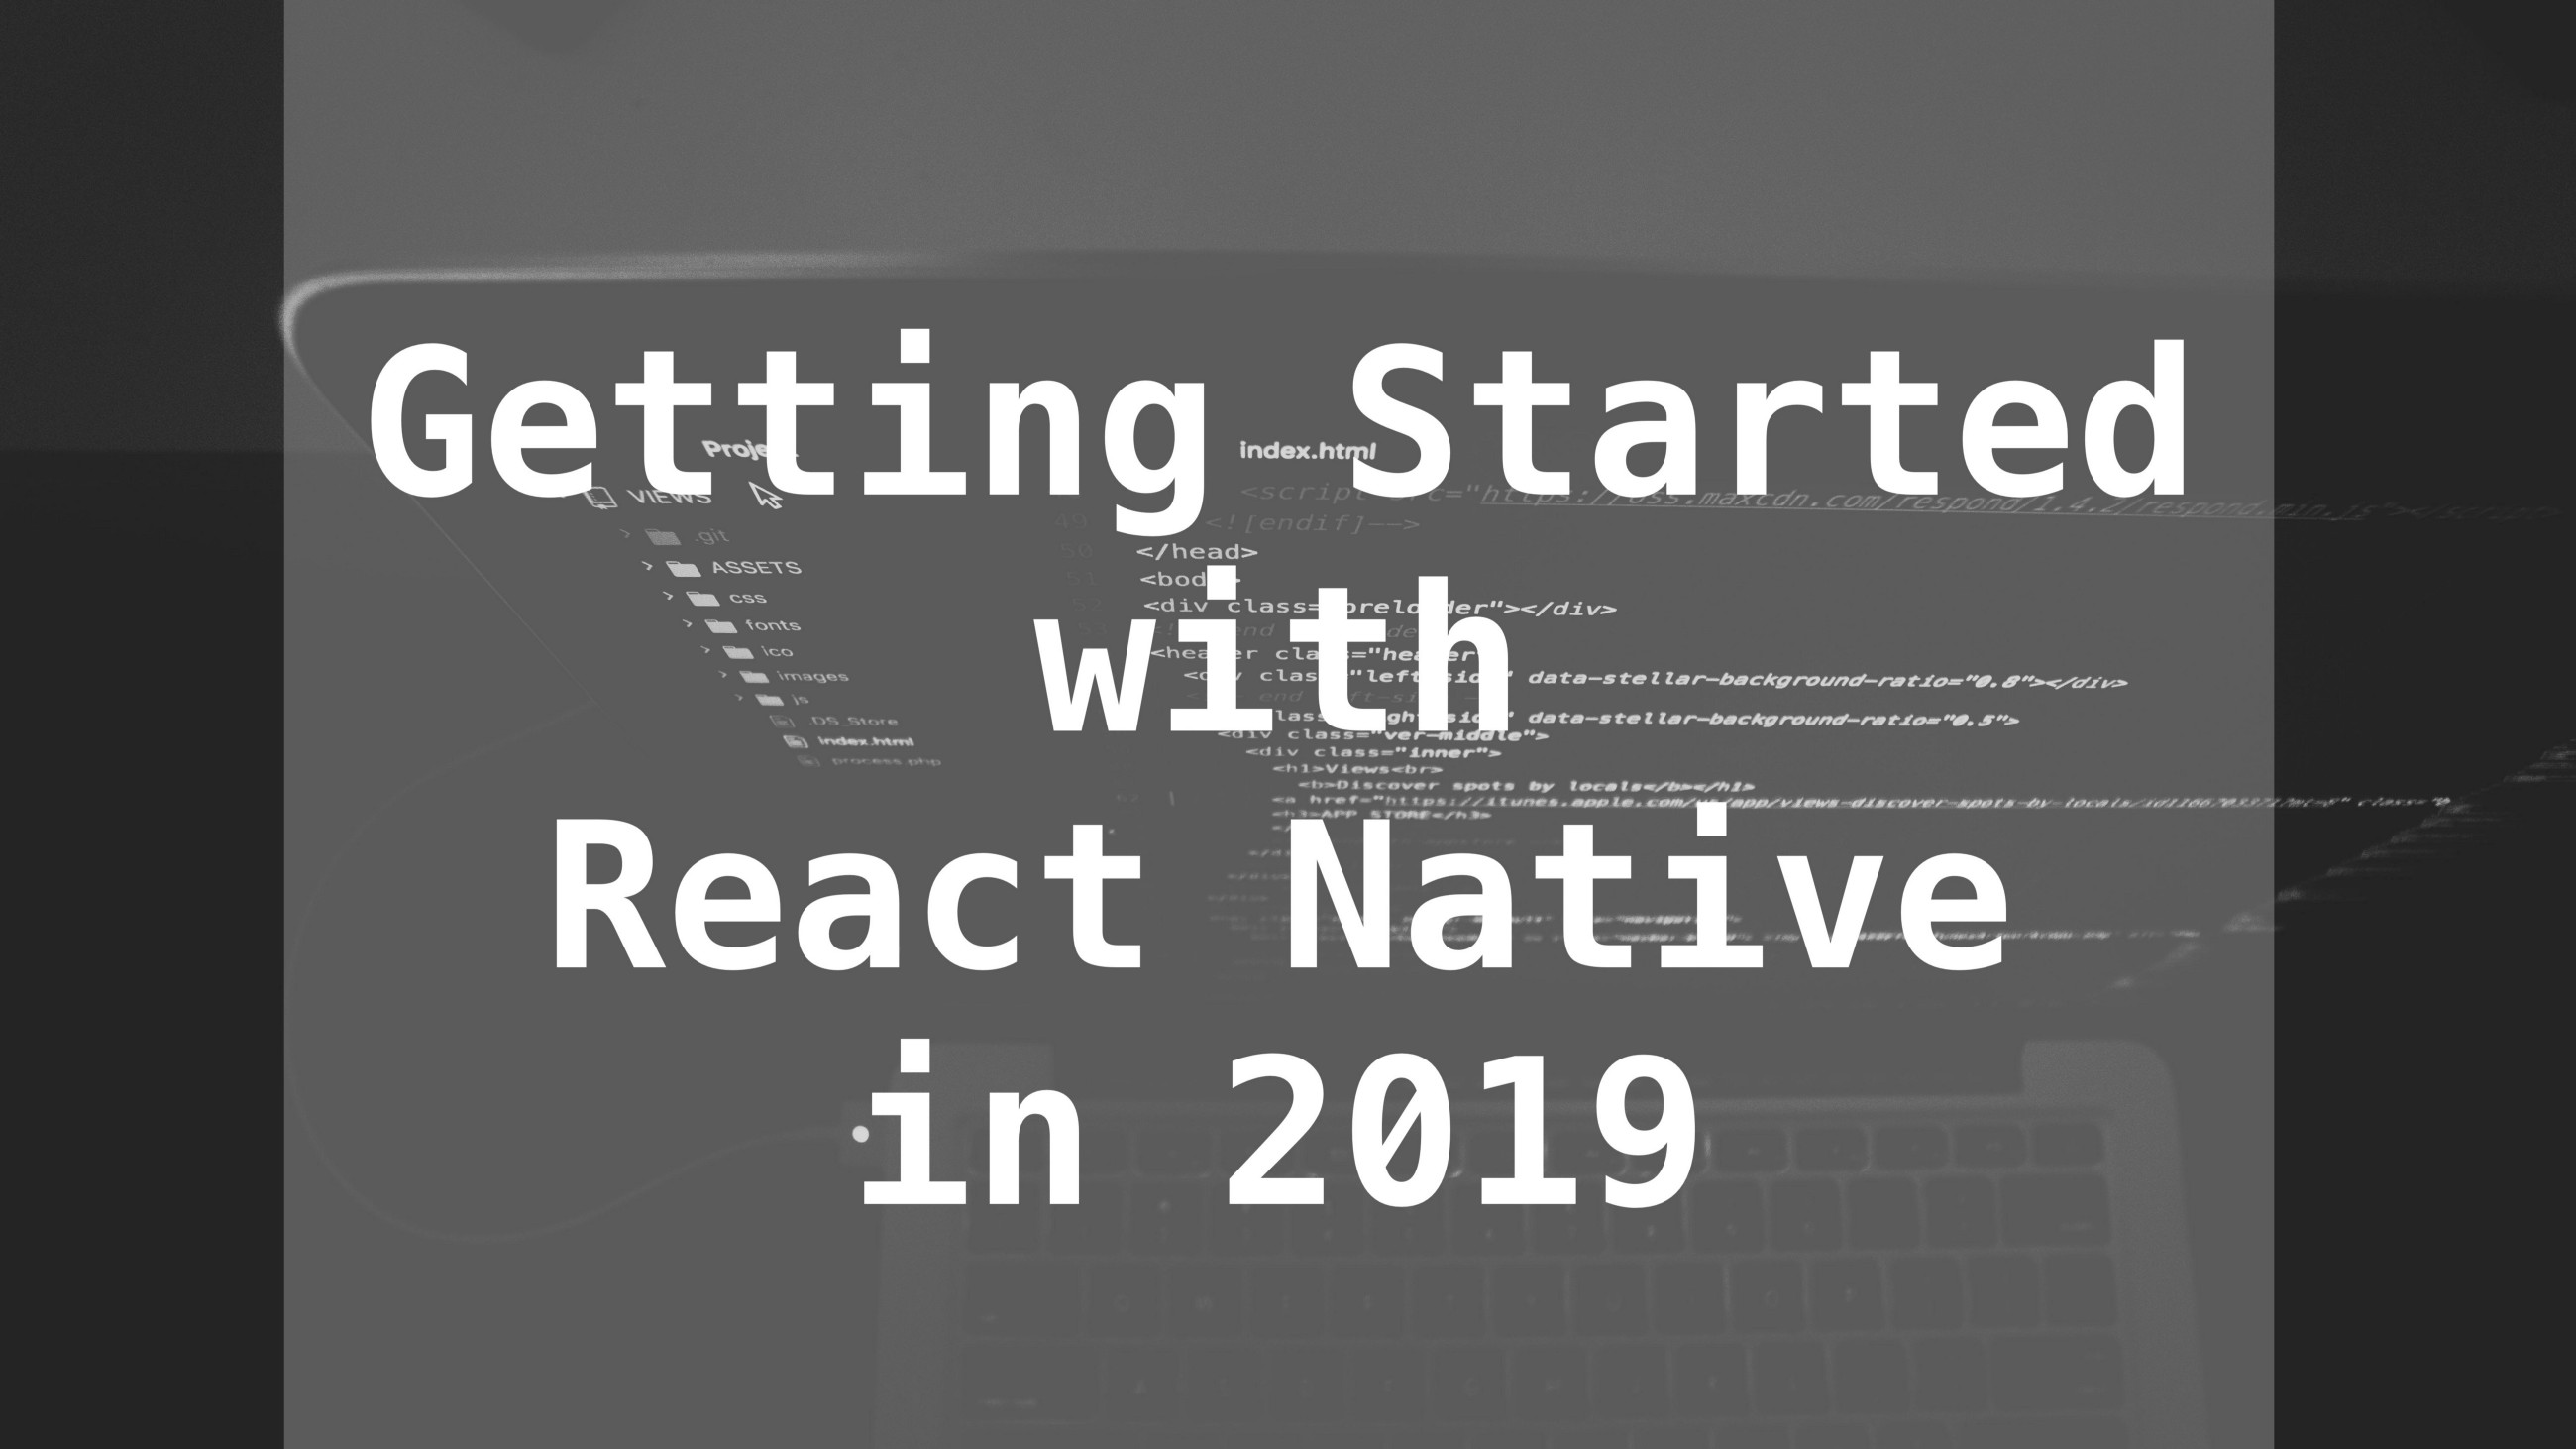 /getting-started-with-react-native-in-2019-build-your-first-app-a41ebc0617e2 feature image